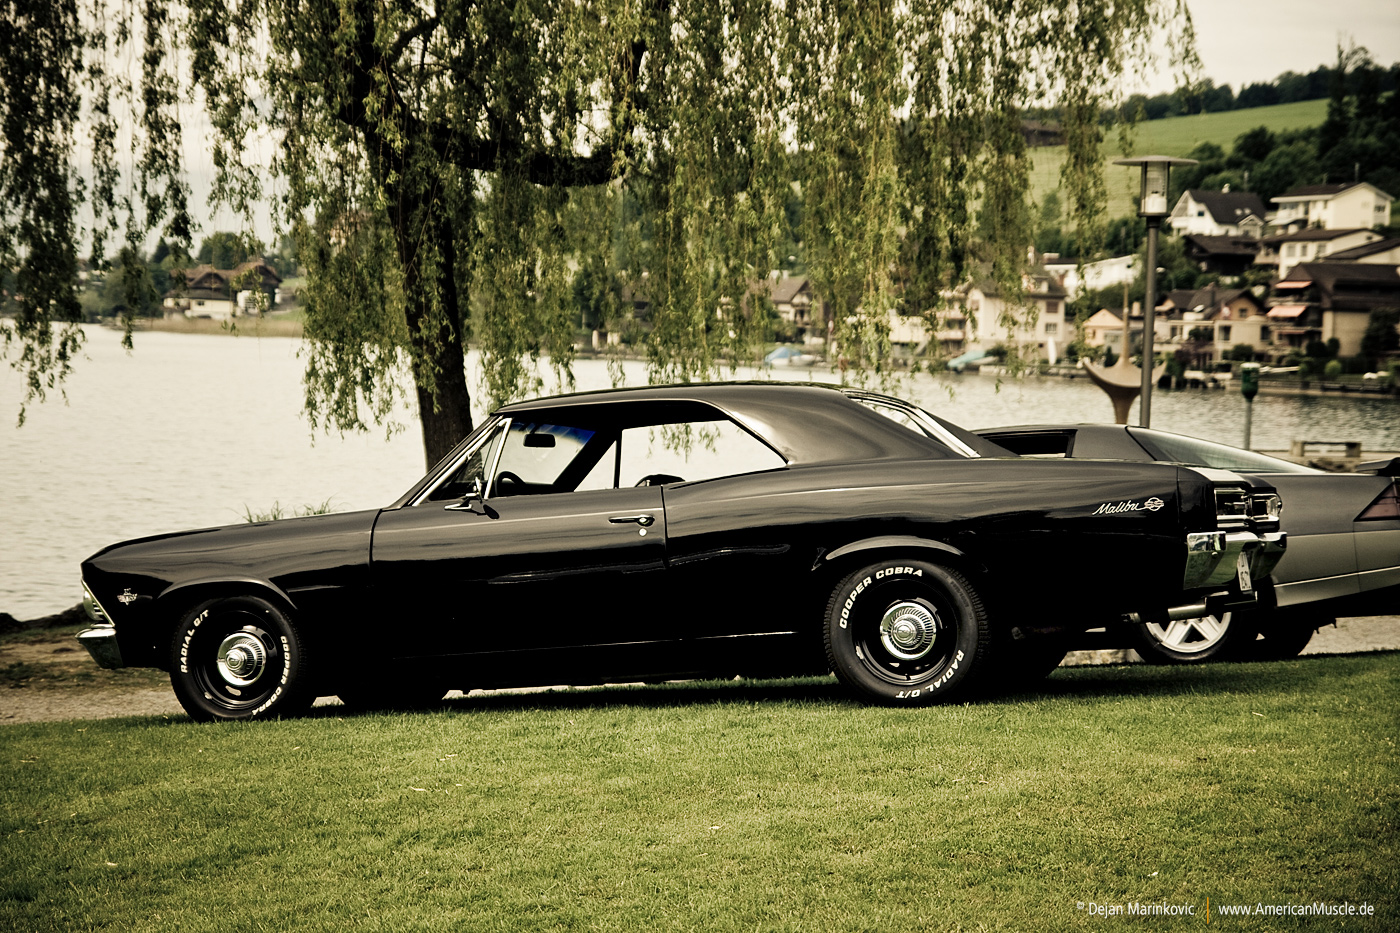 1966 Chevelle Malibu SS by AmericanMuscle on DeviantArt